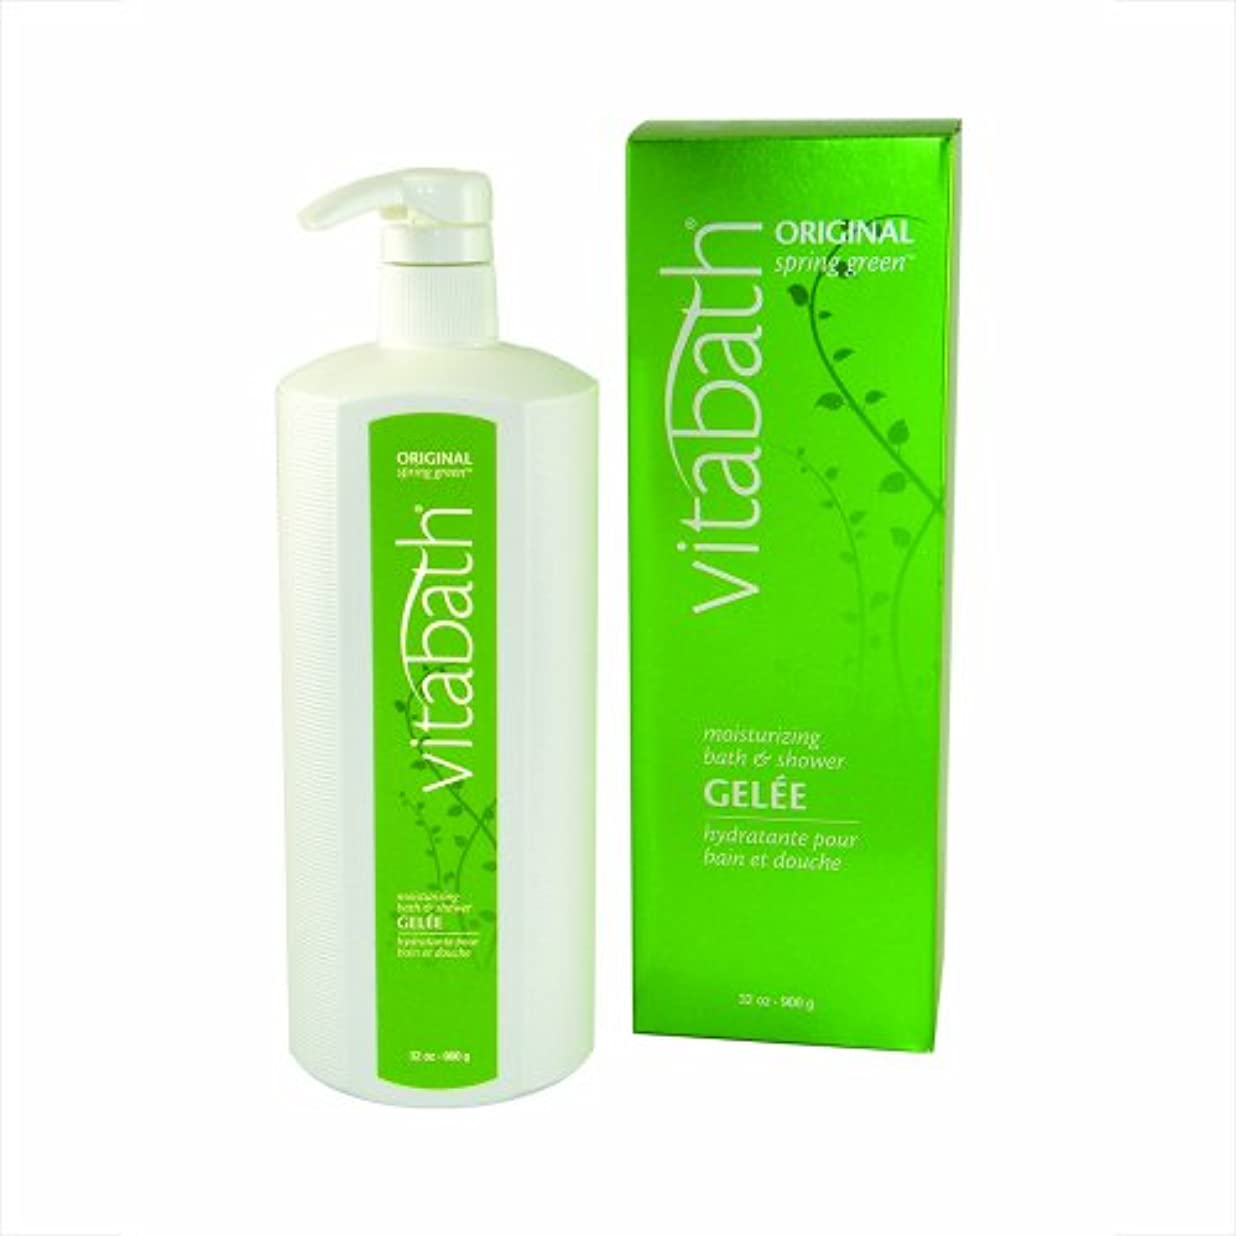 とても多くの匿名先史時代のVitabath Original Spring Green Moisturizing Bath & Shower Gelee 32 oz bath gel by Vitabath